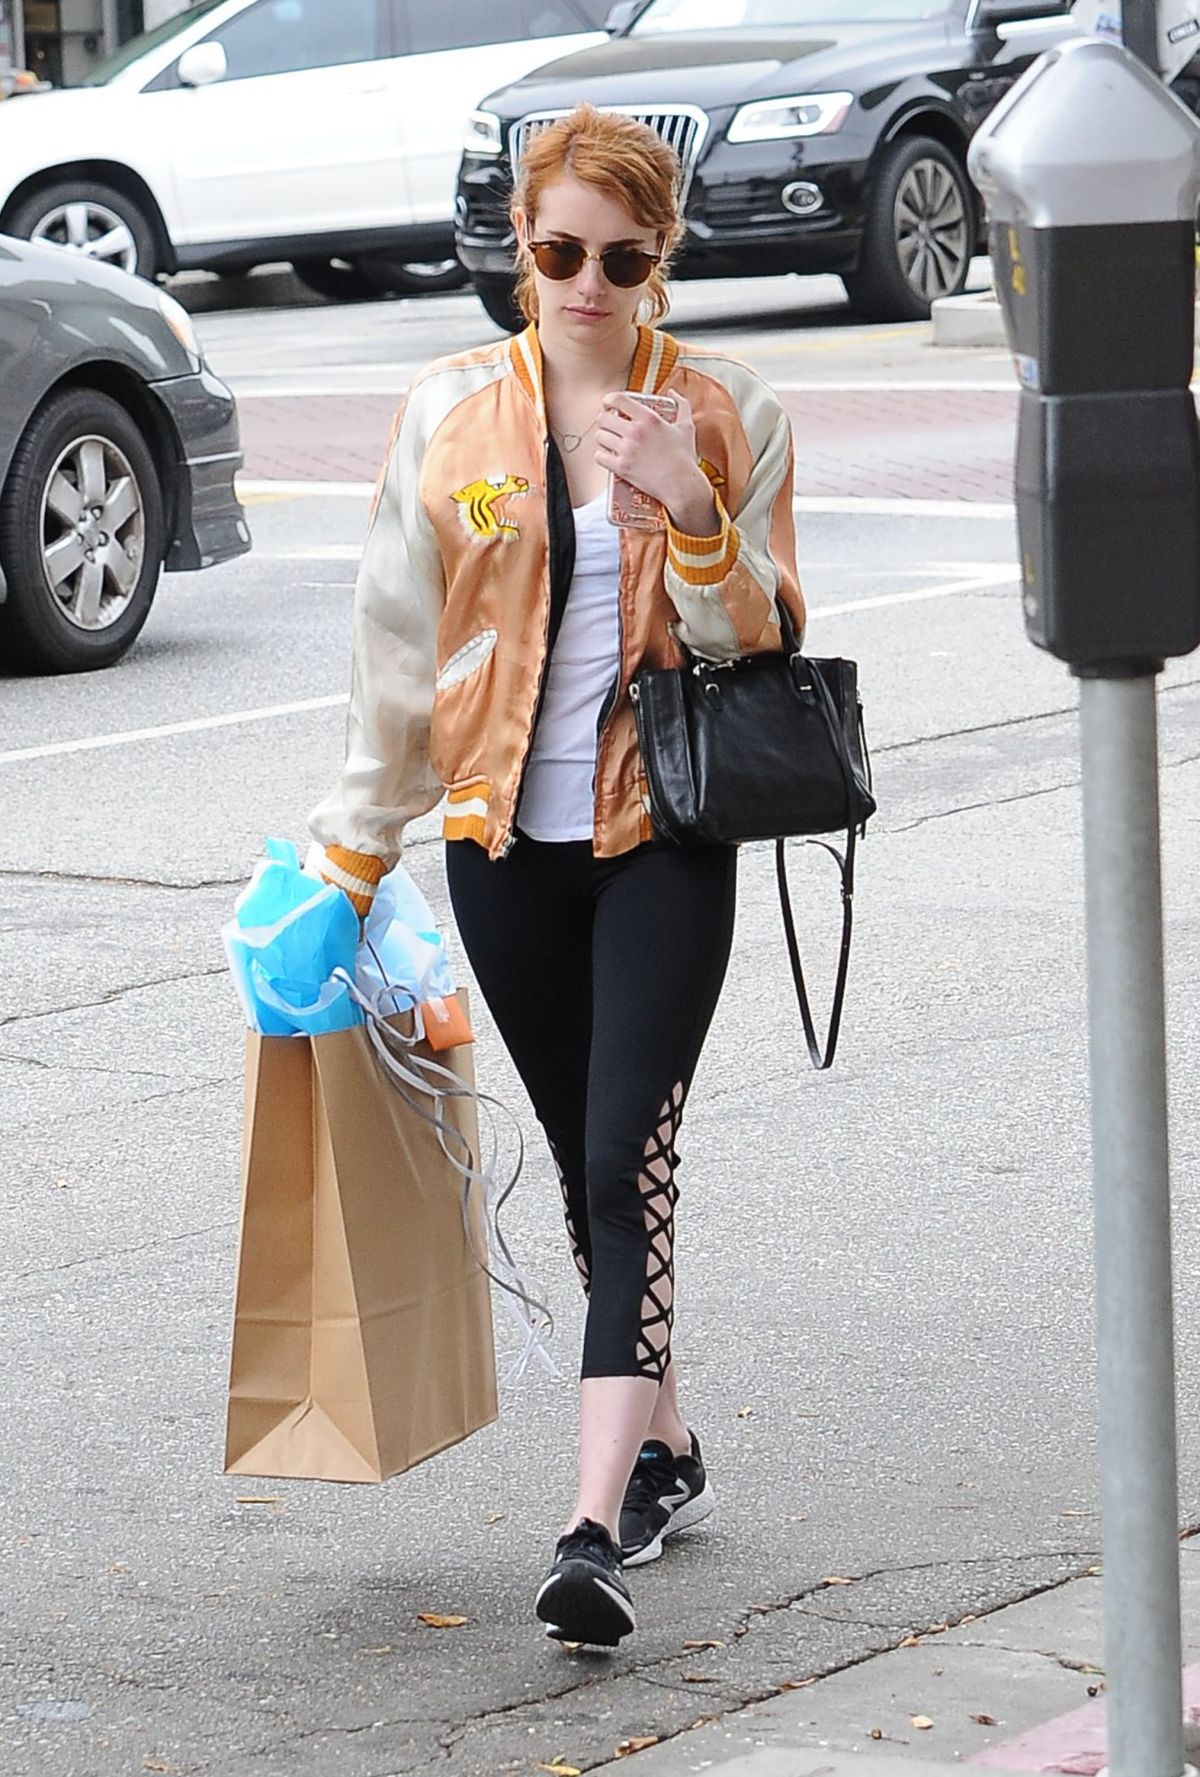 emma roberts out shopping in los angeles 05/11/2016 - hawtcelebs